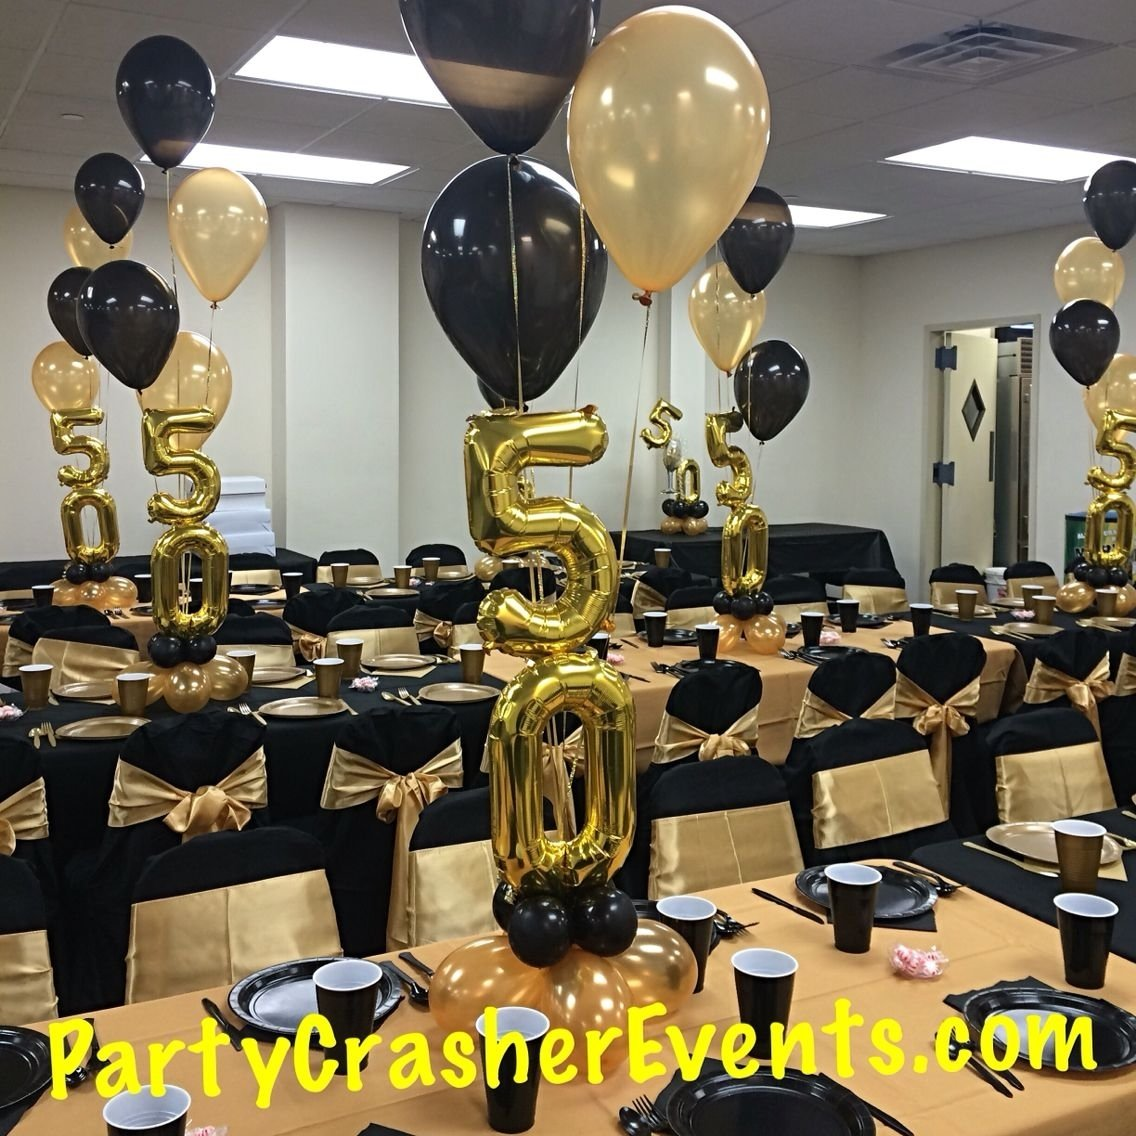 10 Trendy 60Th Birthday Party Ideas For Men pinpeter lewis on 30 year old birthday party ideas themes 3 2020